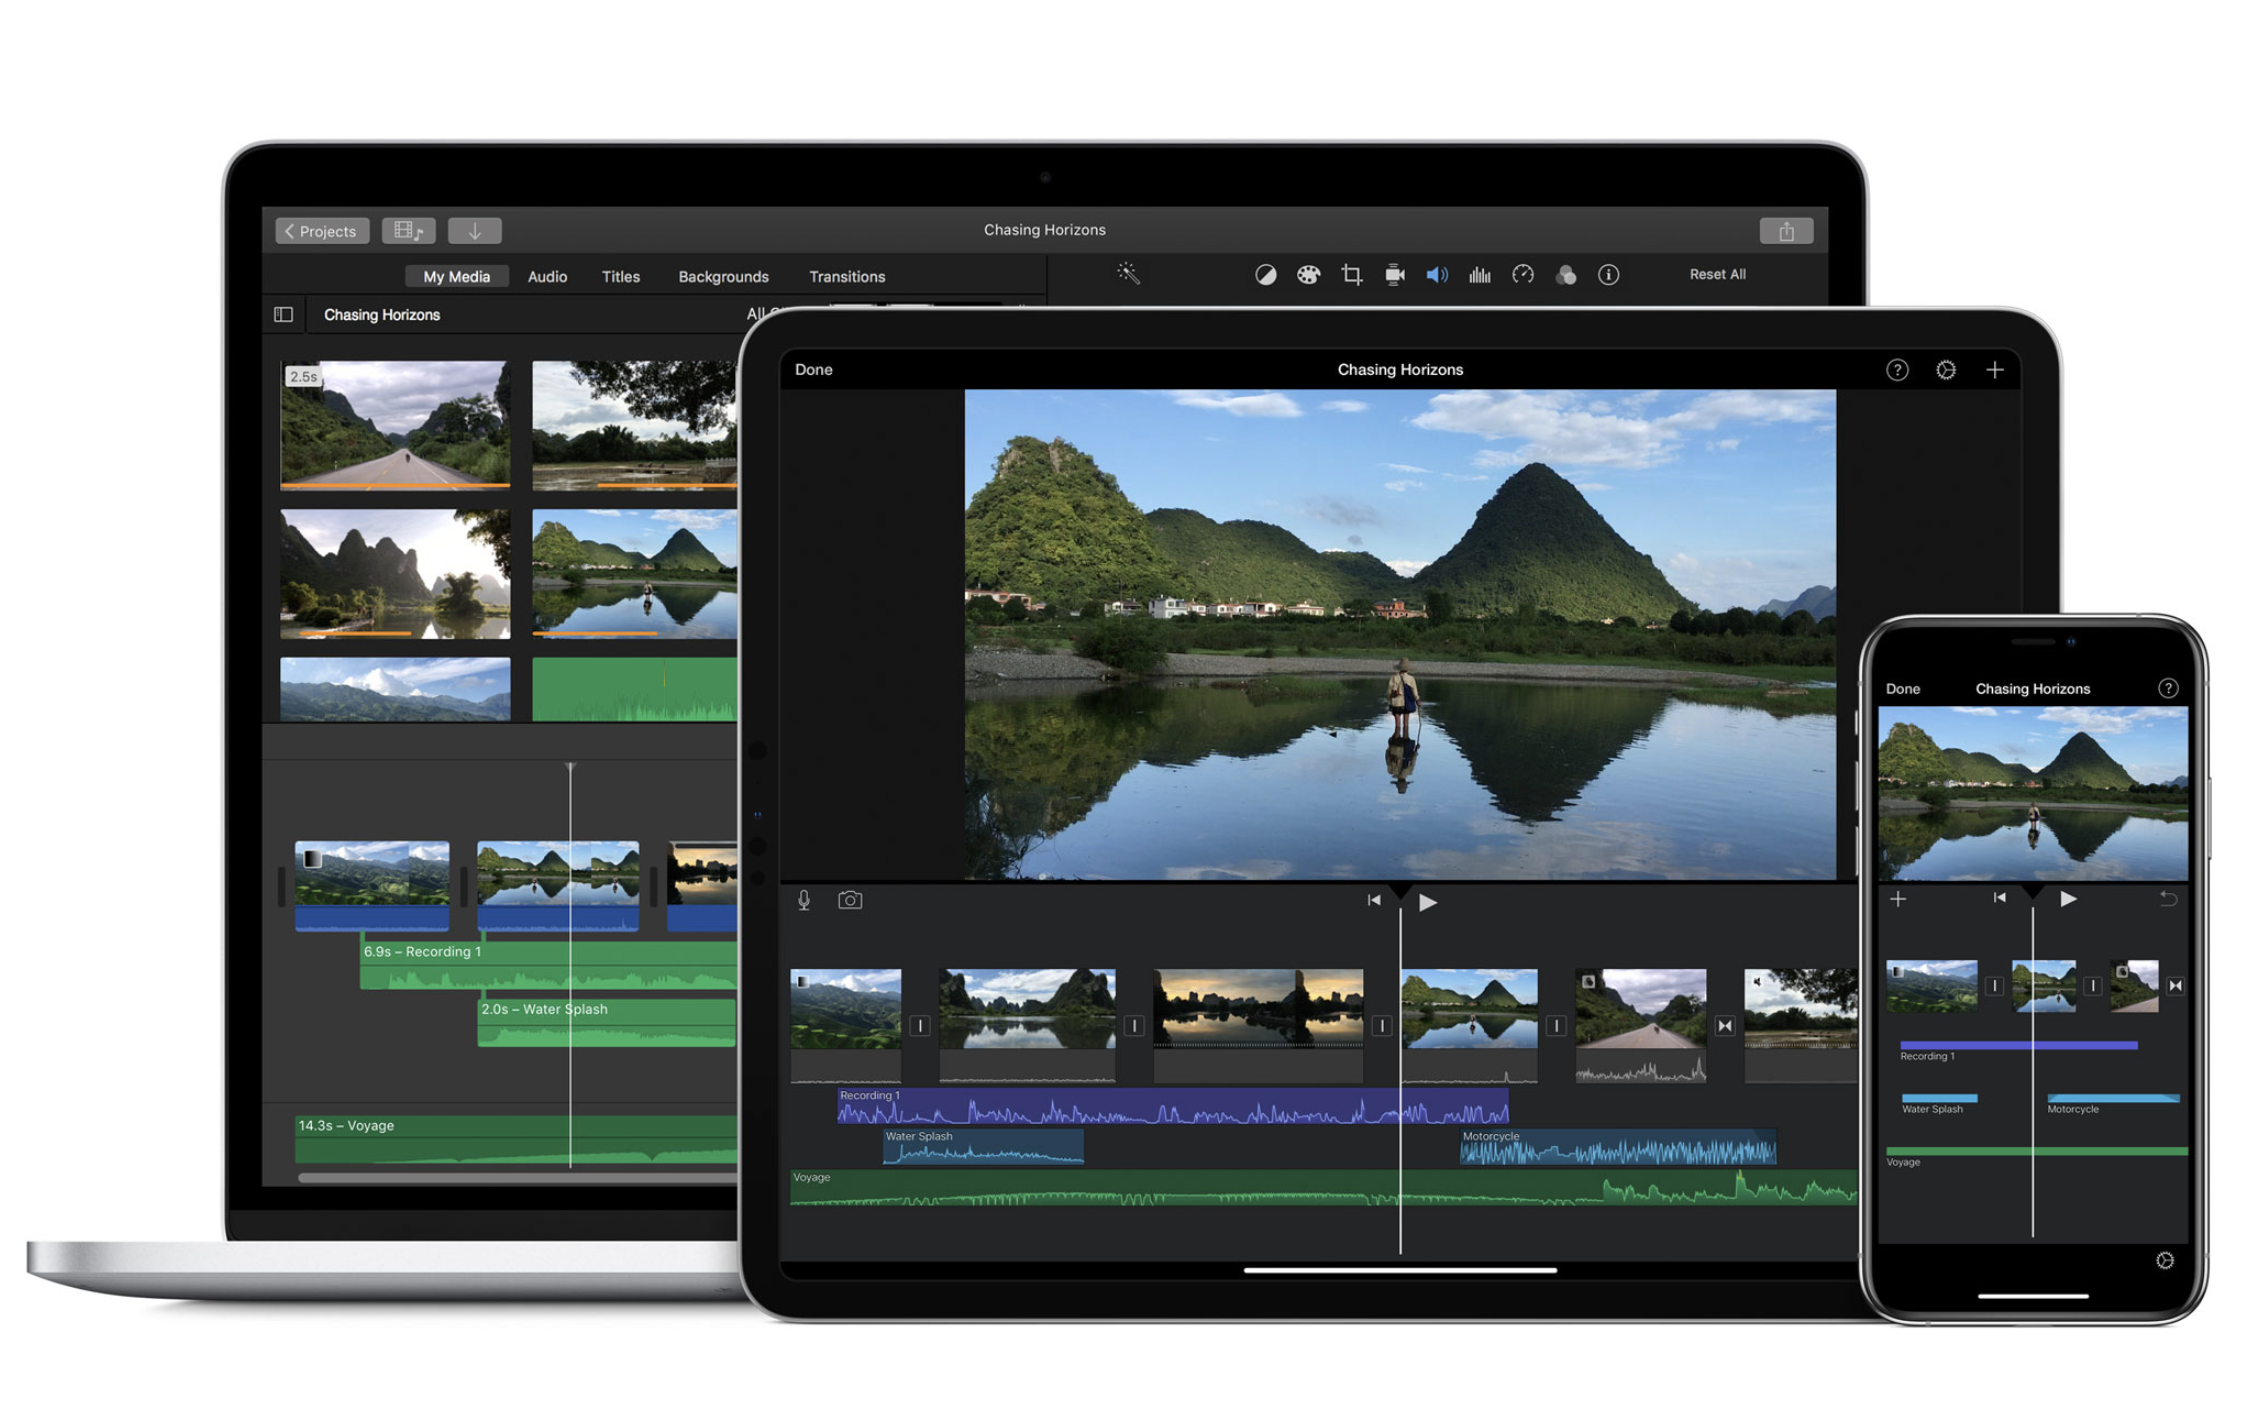 Imovie S Big Ios Update Adds 80 New Soundtracks Green Screen Effects Image Overlays Techcrunch